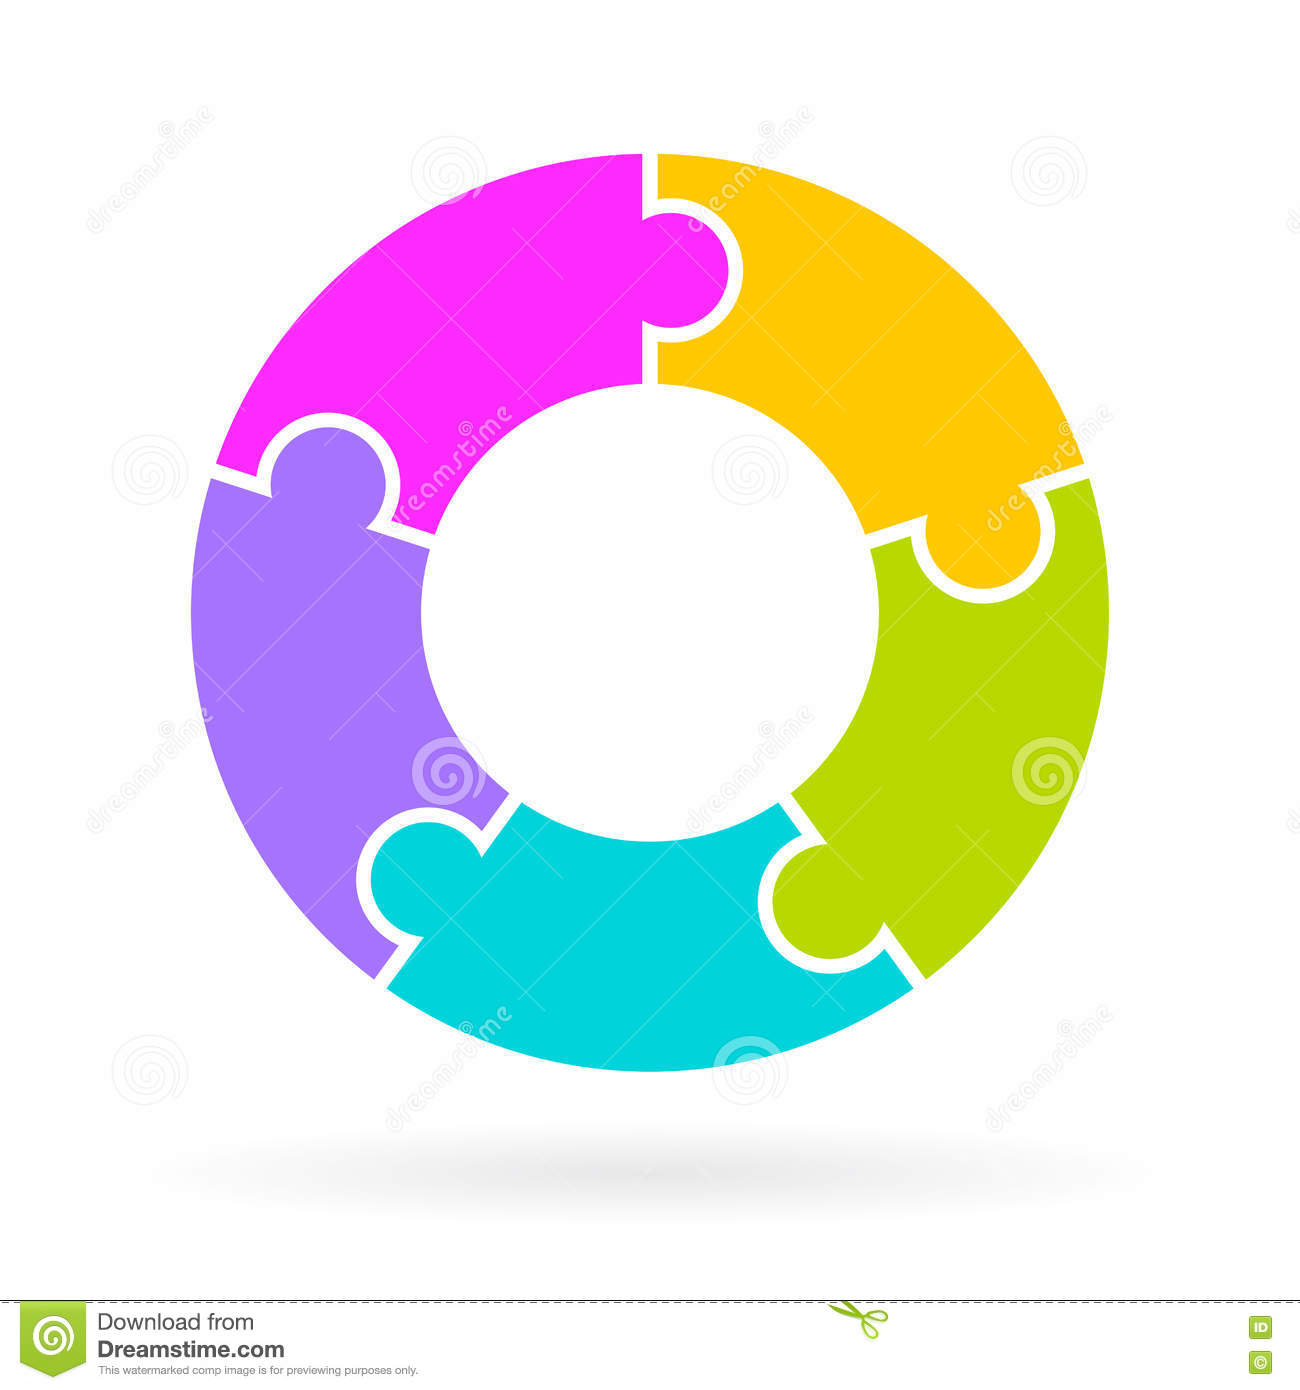 5 Steps Lifecycle Diagram Stock Vector  Illustration Of